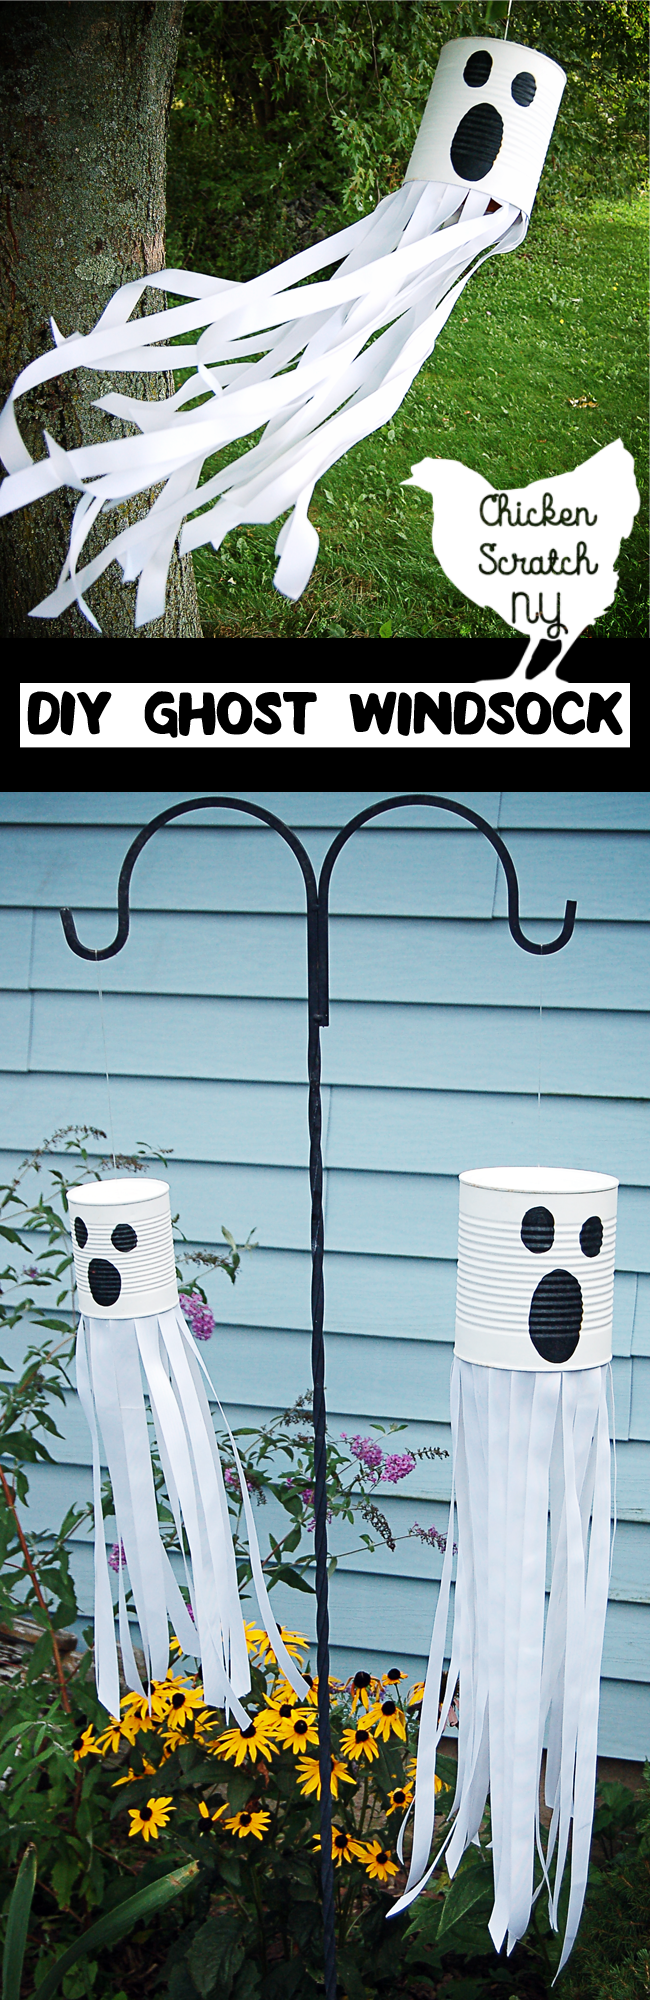 diy tin can ghost windsock scary halloween decorationshalloween kidshalloween